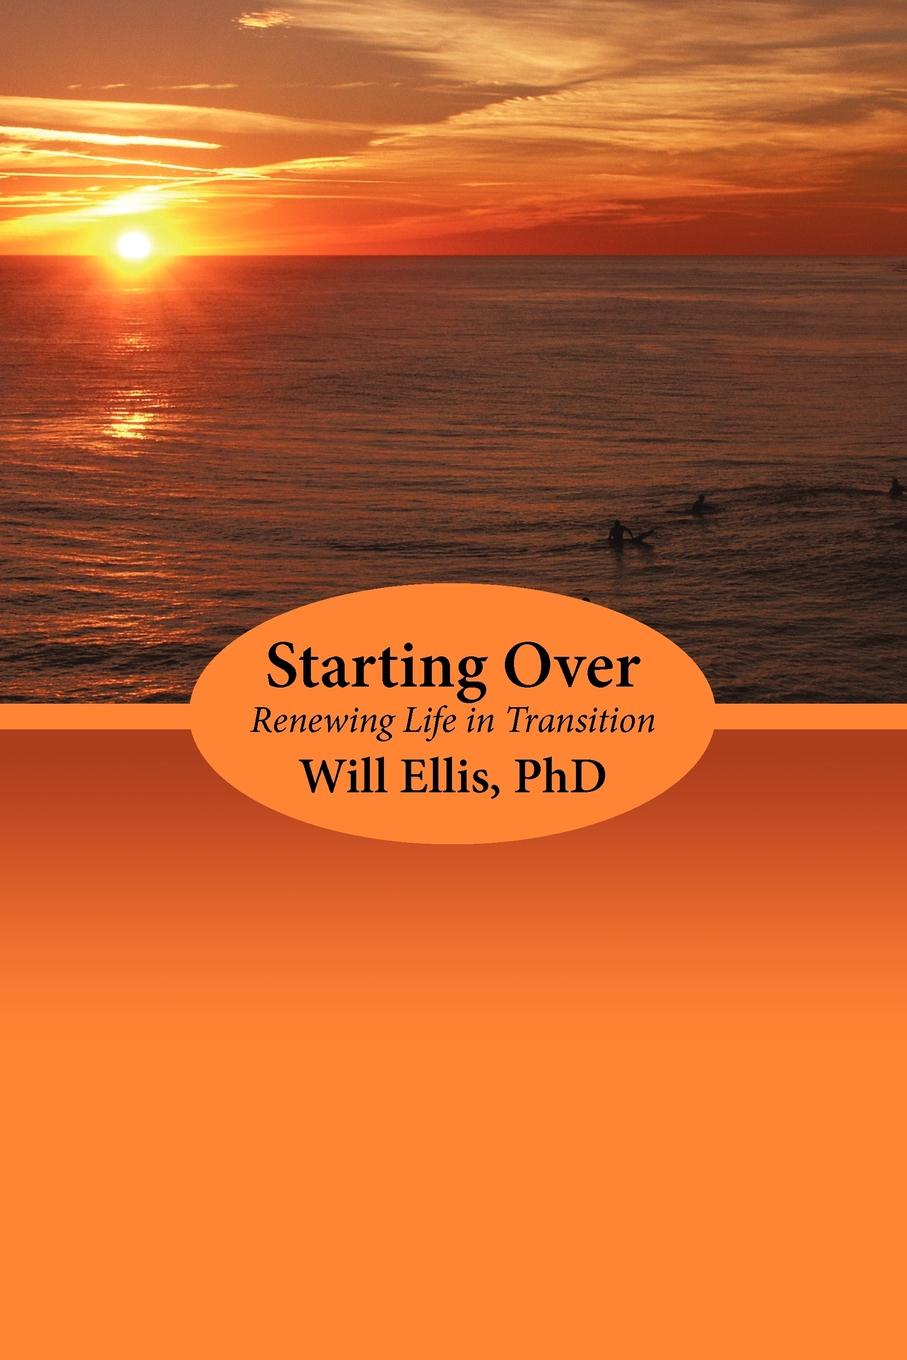 Will Ellis Starting Over. Renewing Life in Transition jens brakenhoff life as we know it